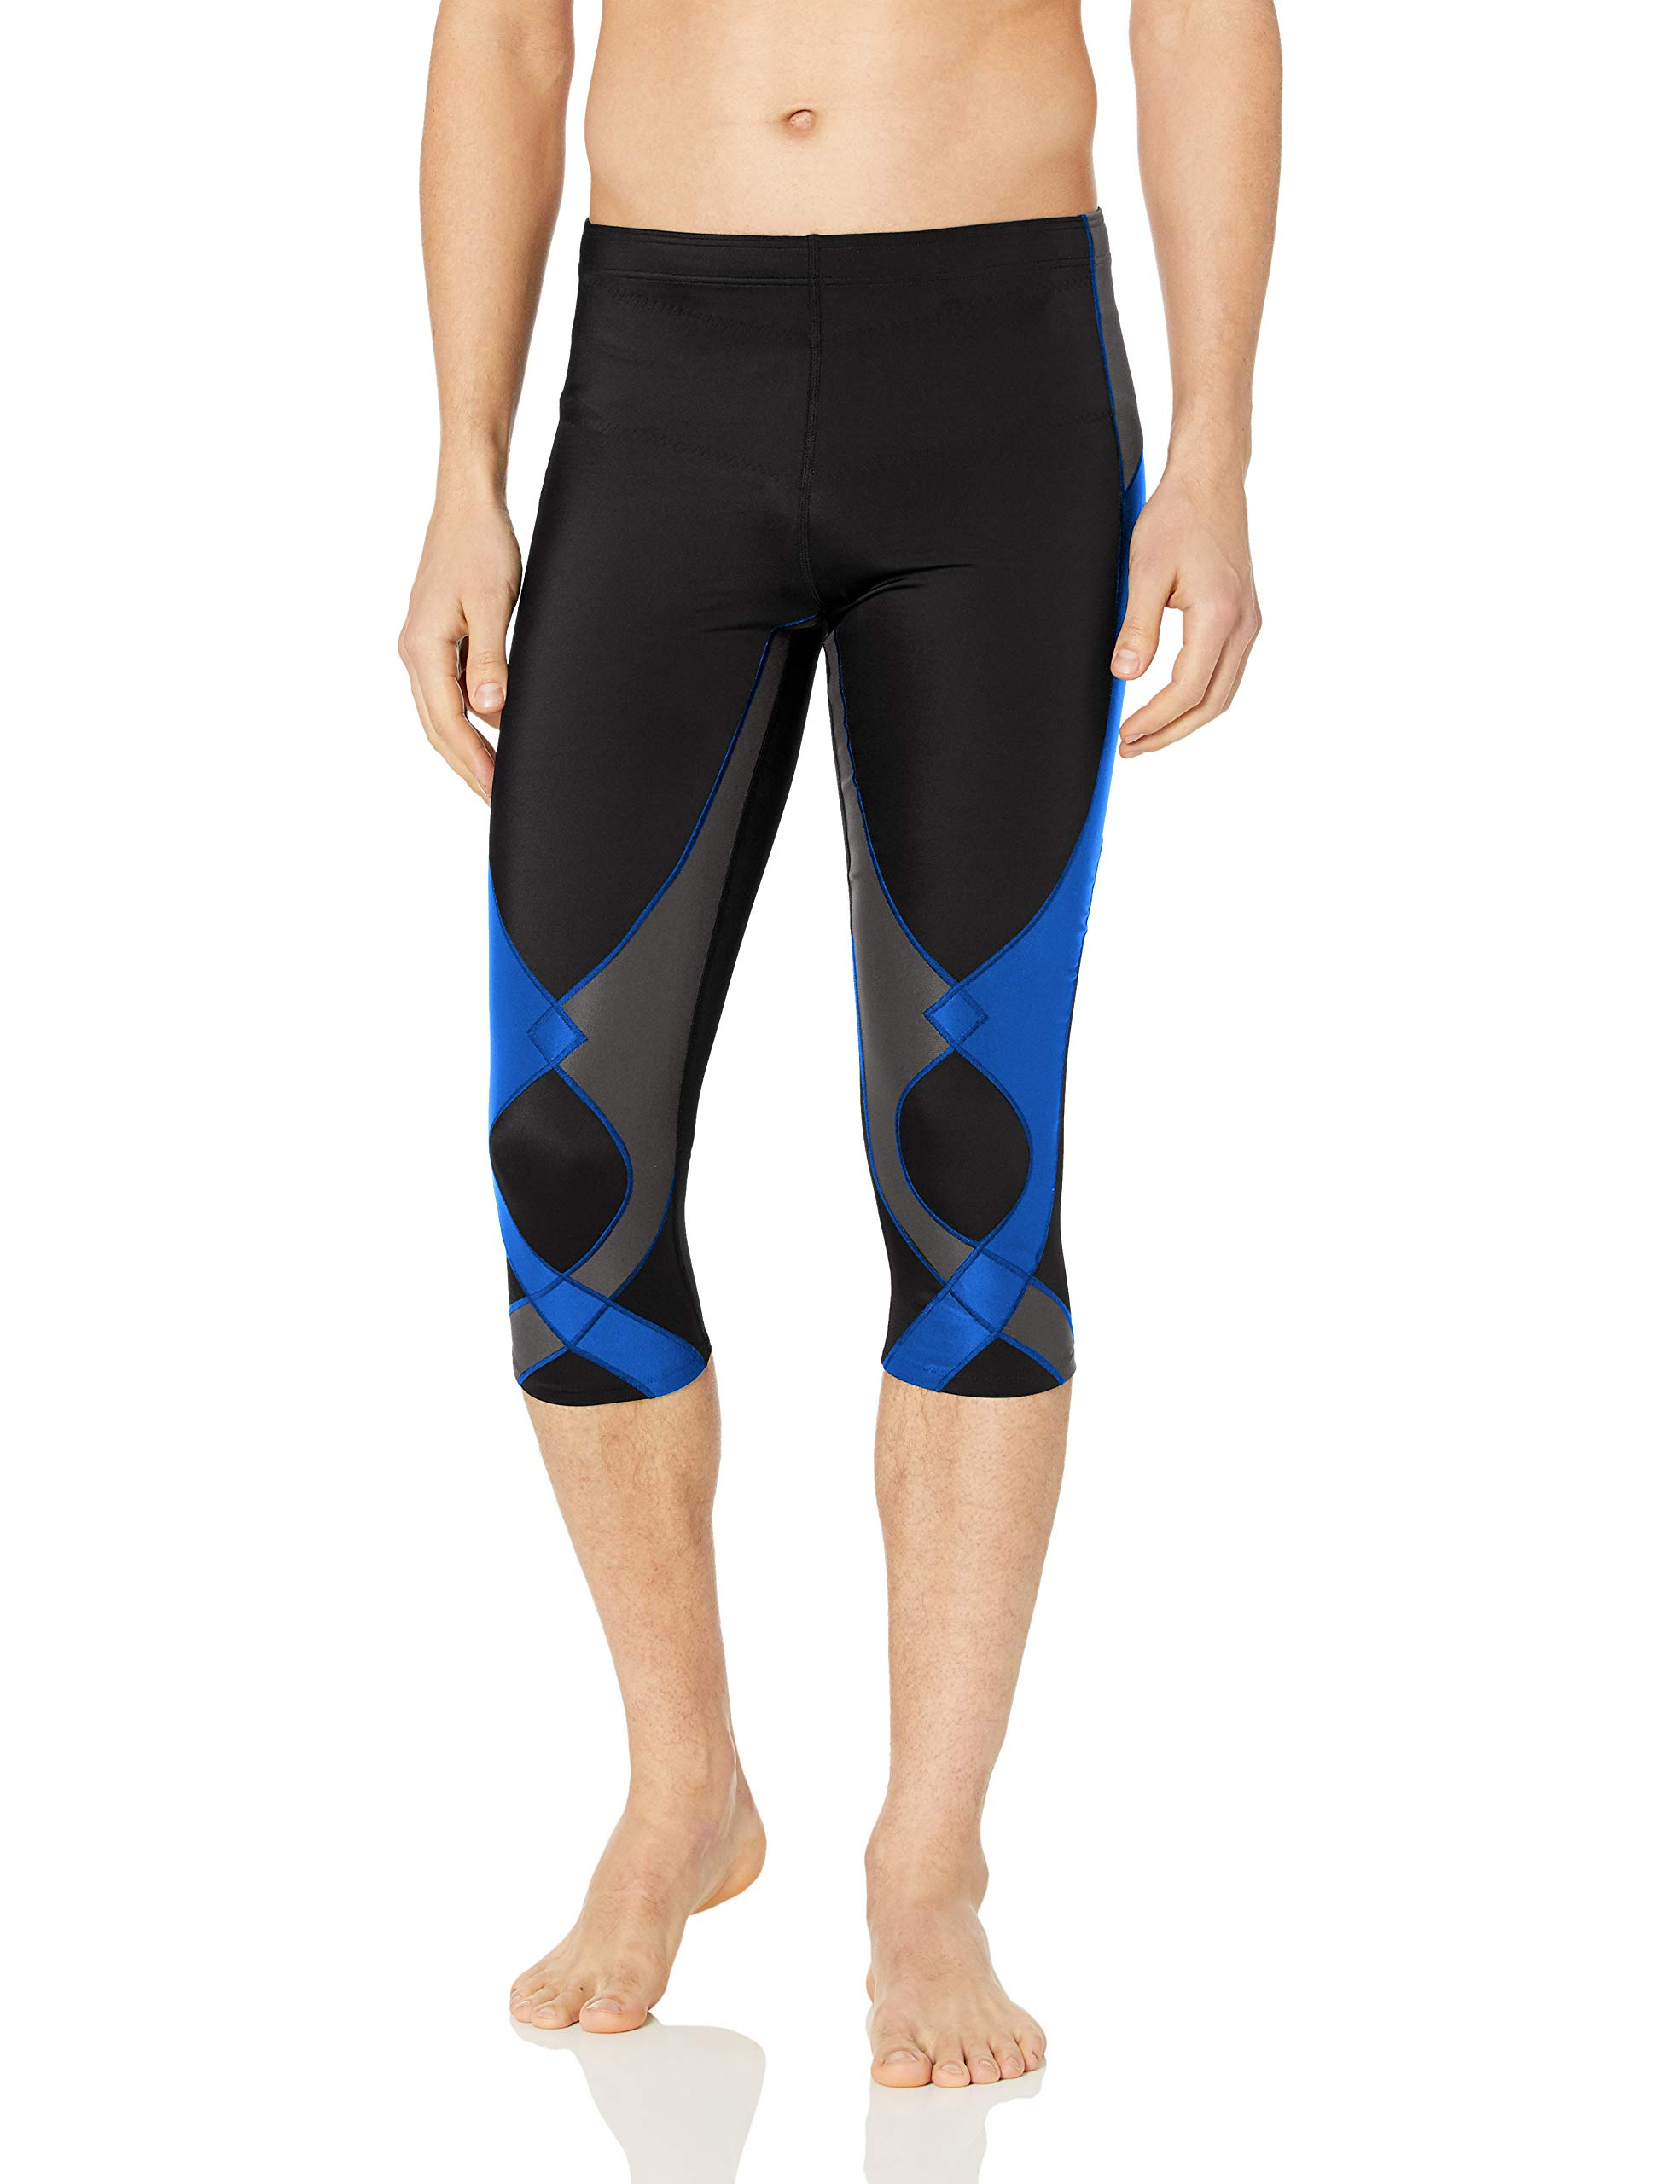 CW-X Men's Stabilyx Joint Support 3/4 Compression